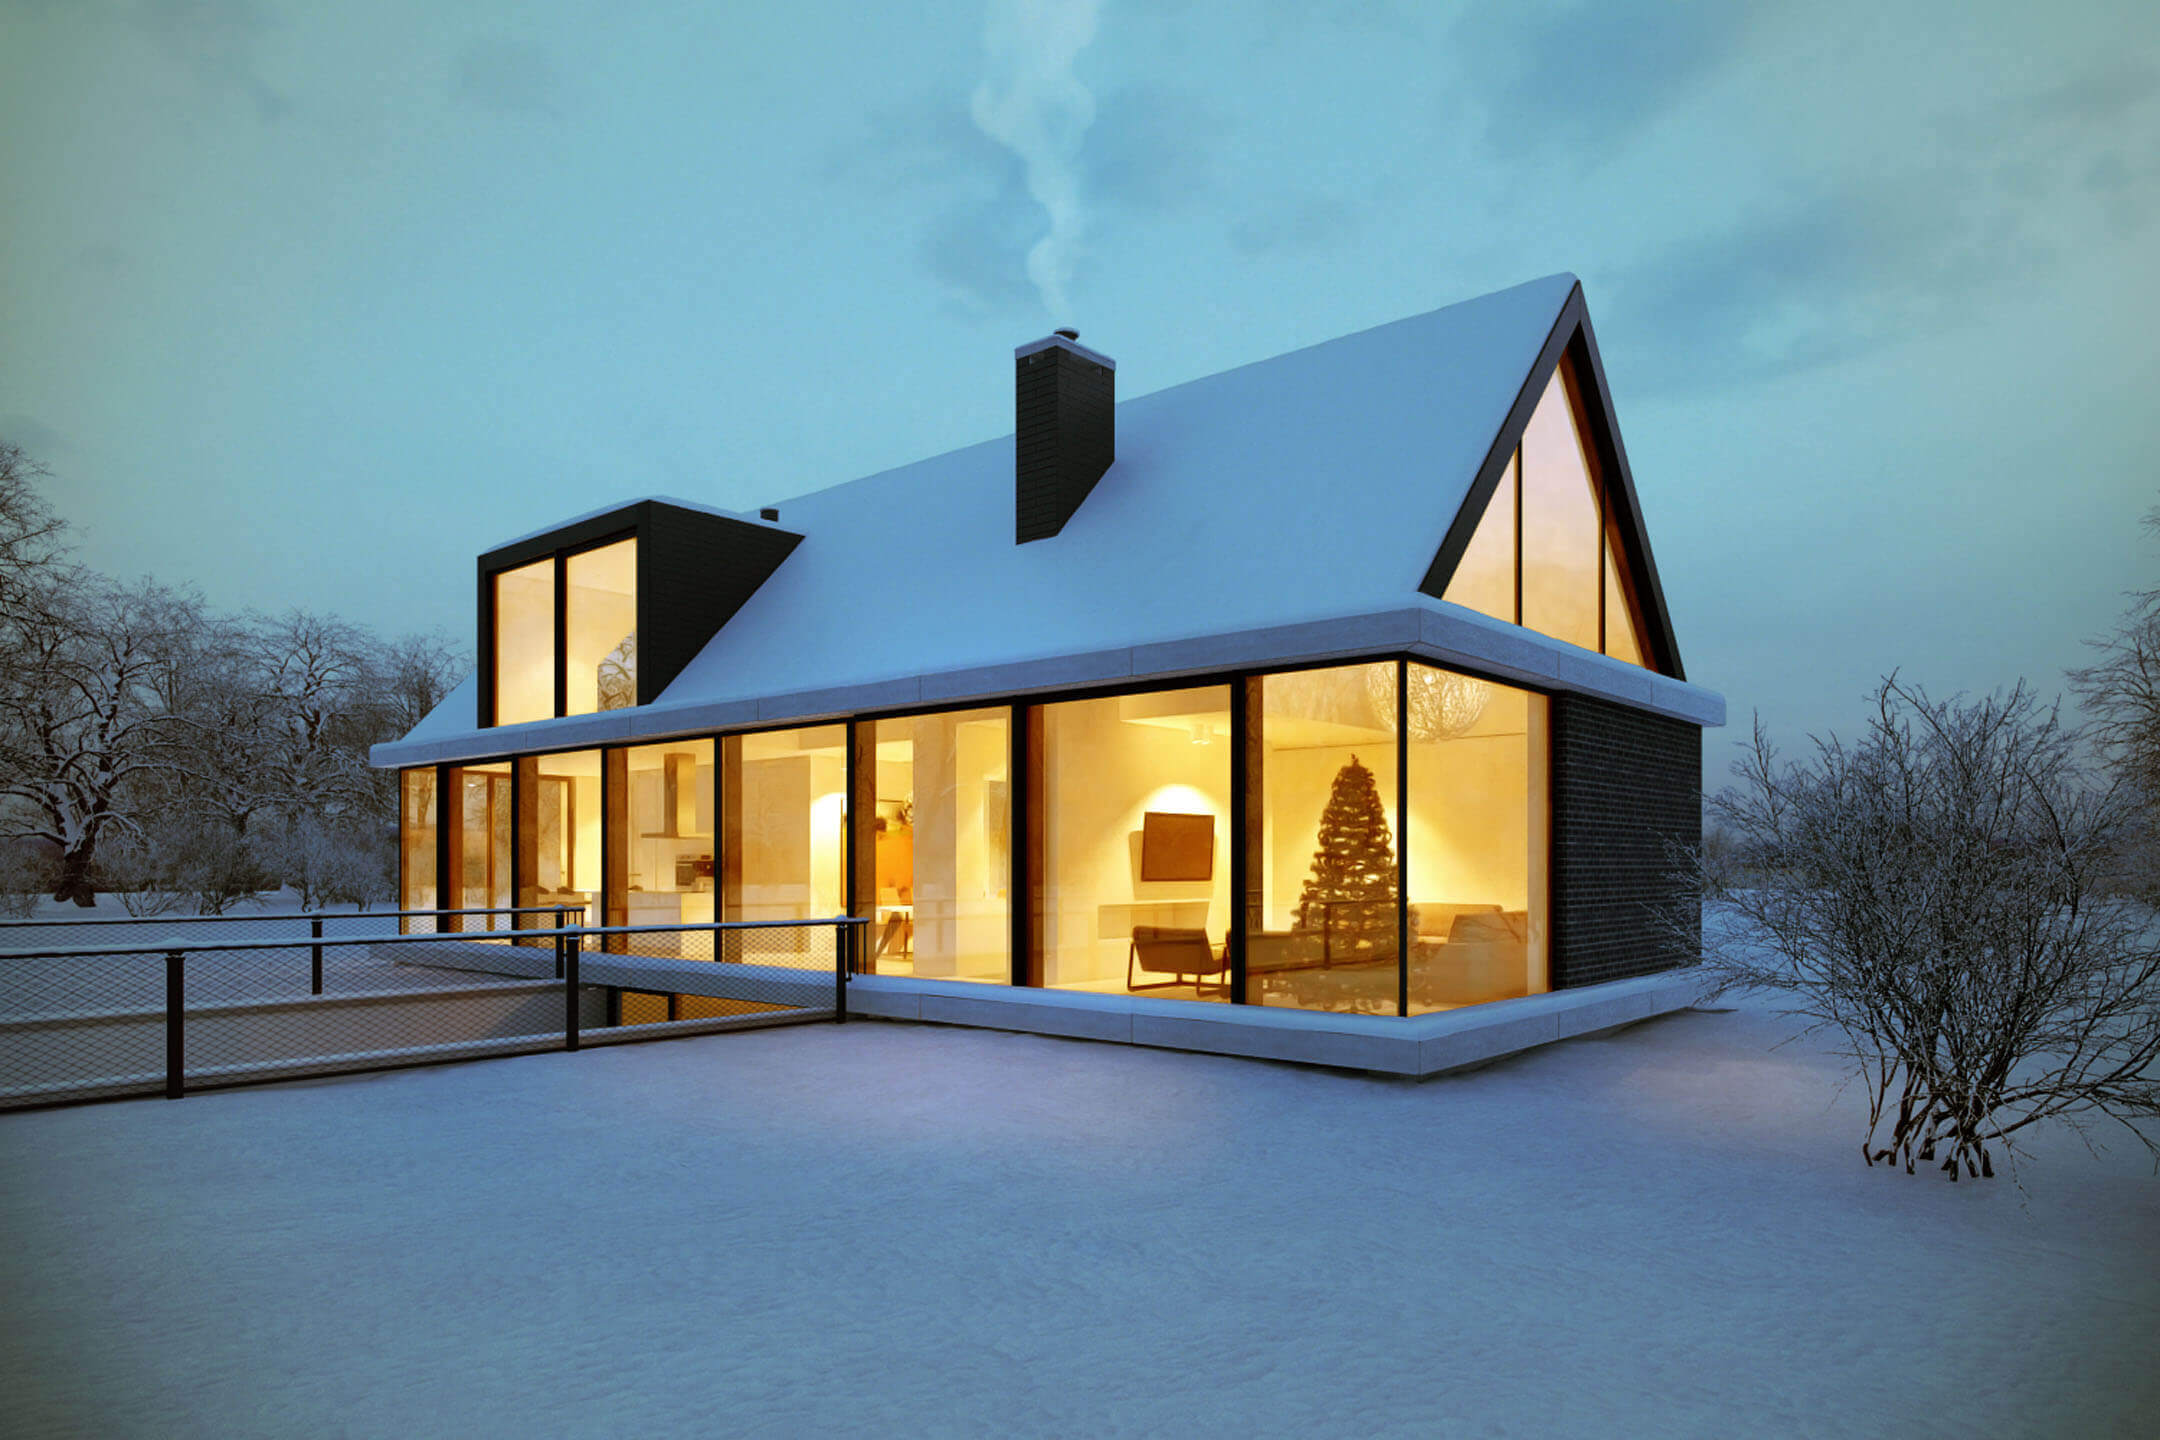 Photoreal 3D Model Of A Cozy House In Winter